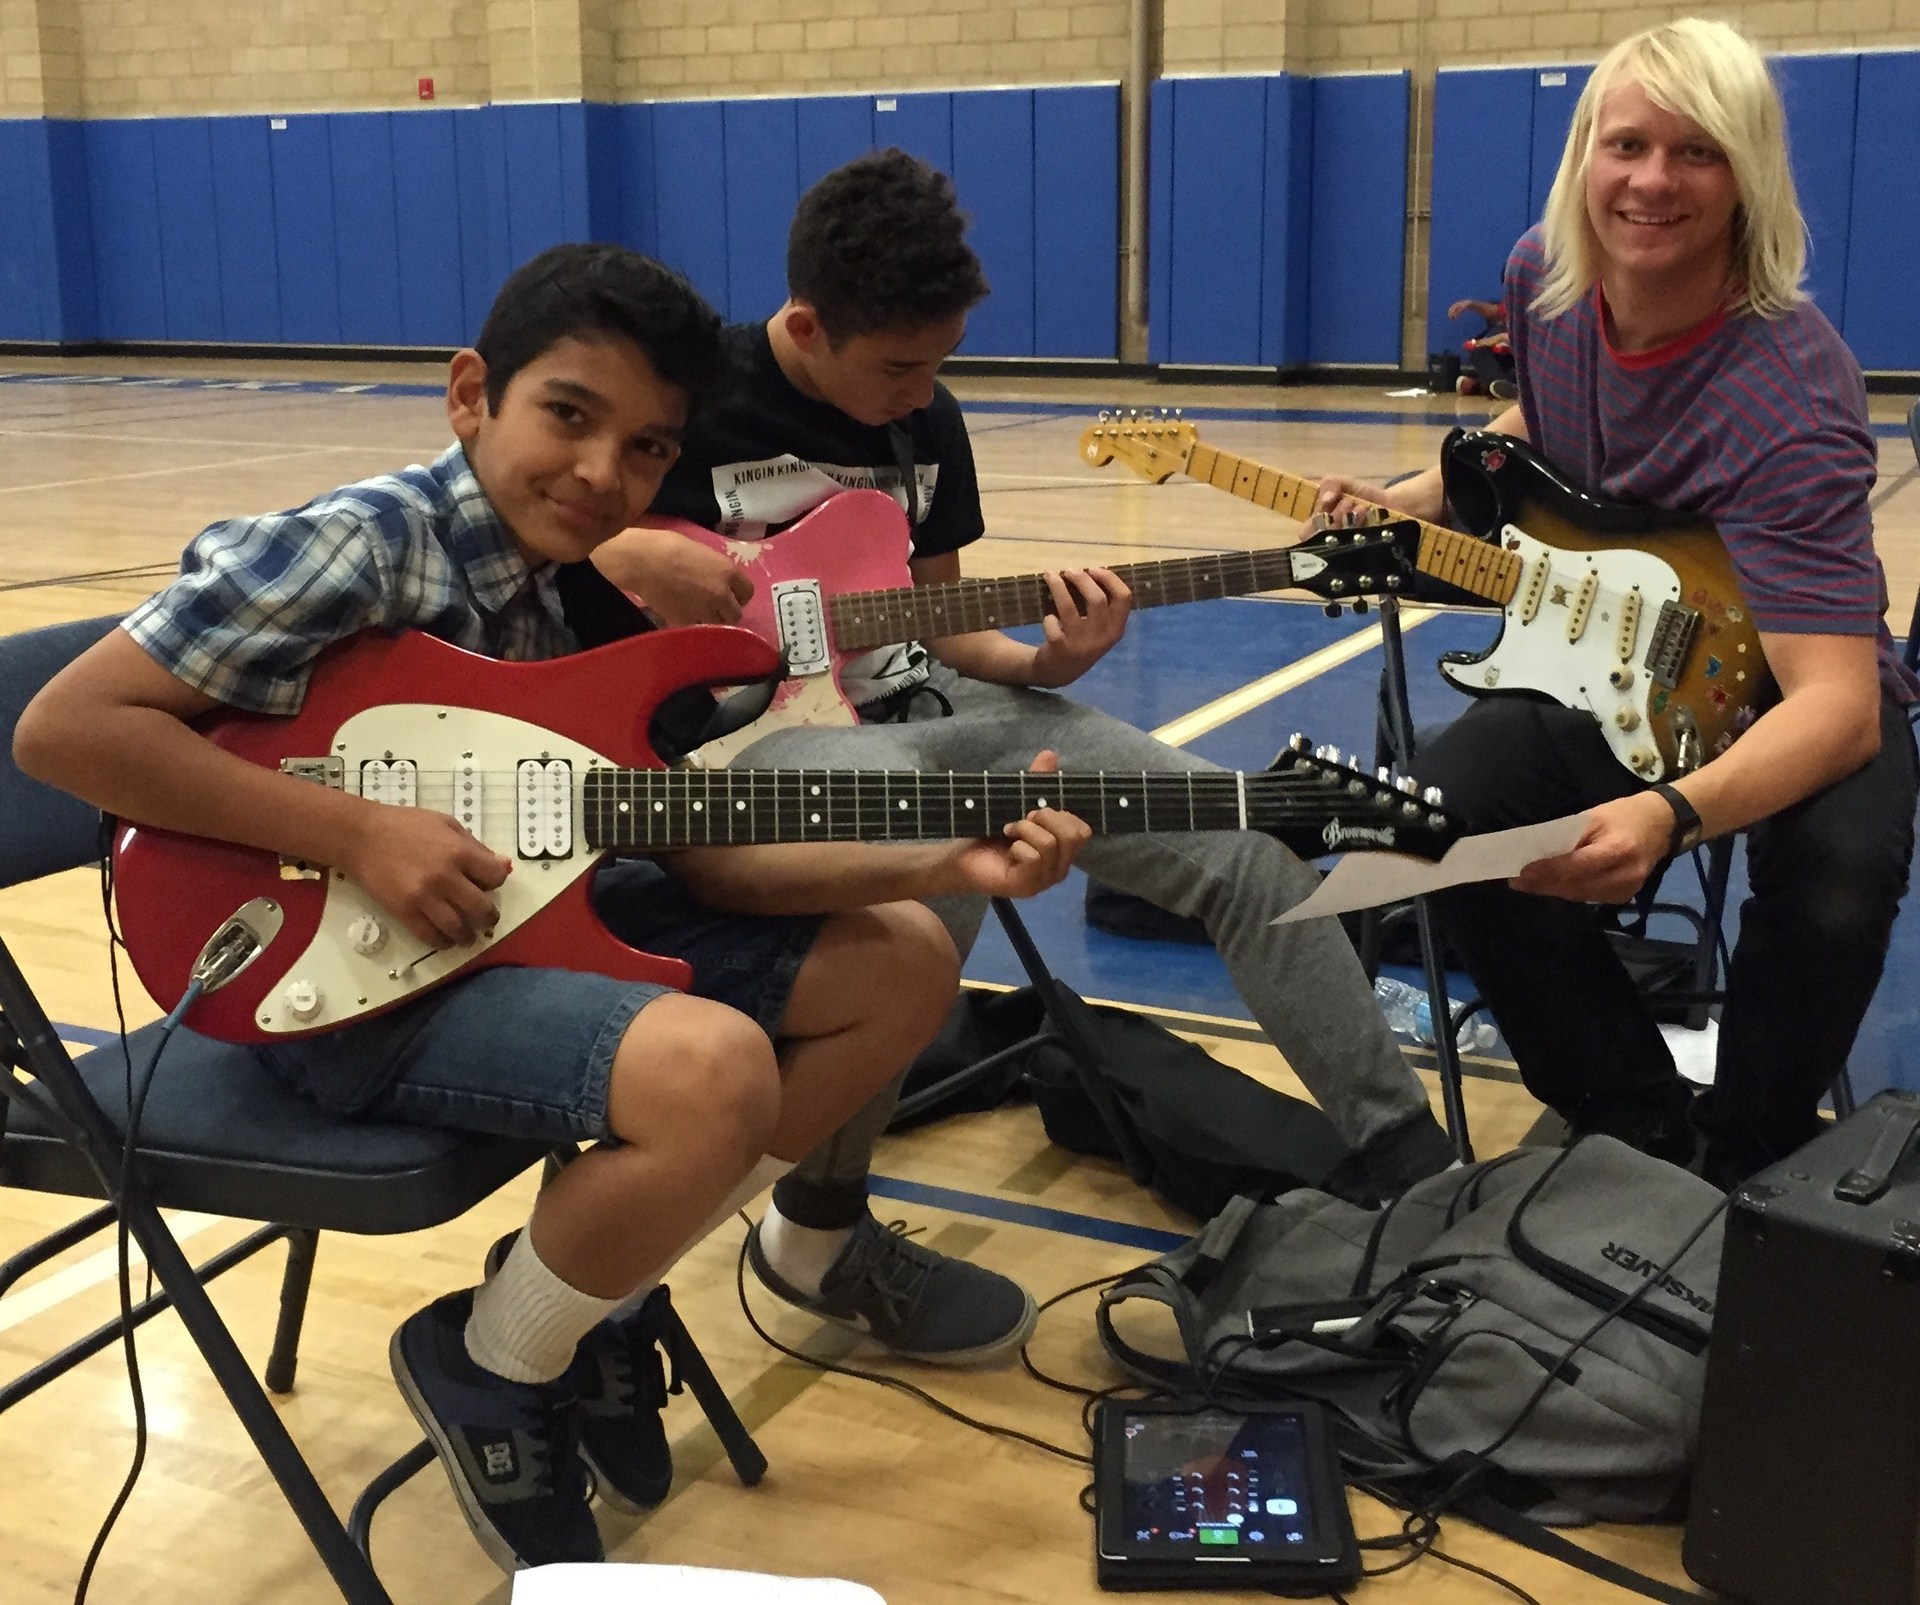 Students in an after school program playing the guitar.